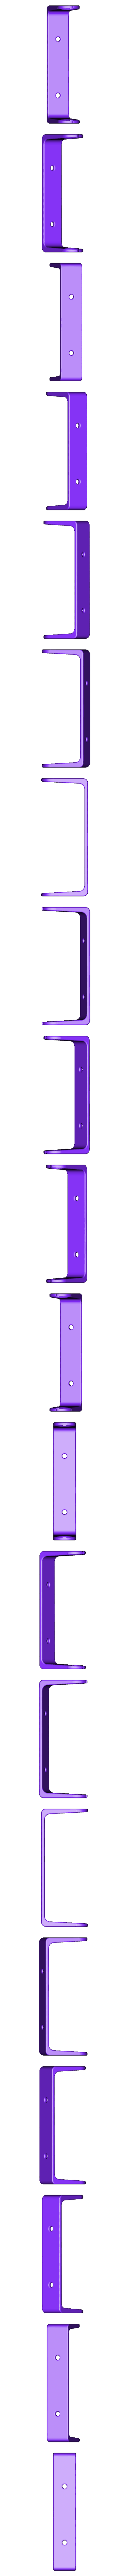 Winder_Holder_Triton_v1.stl Download free STL file The other parts of my router table • 3D printing object, Darrens_Workshop